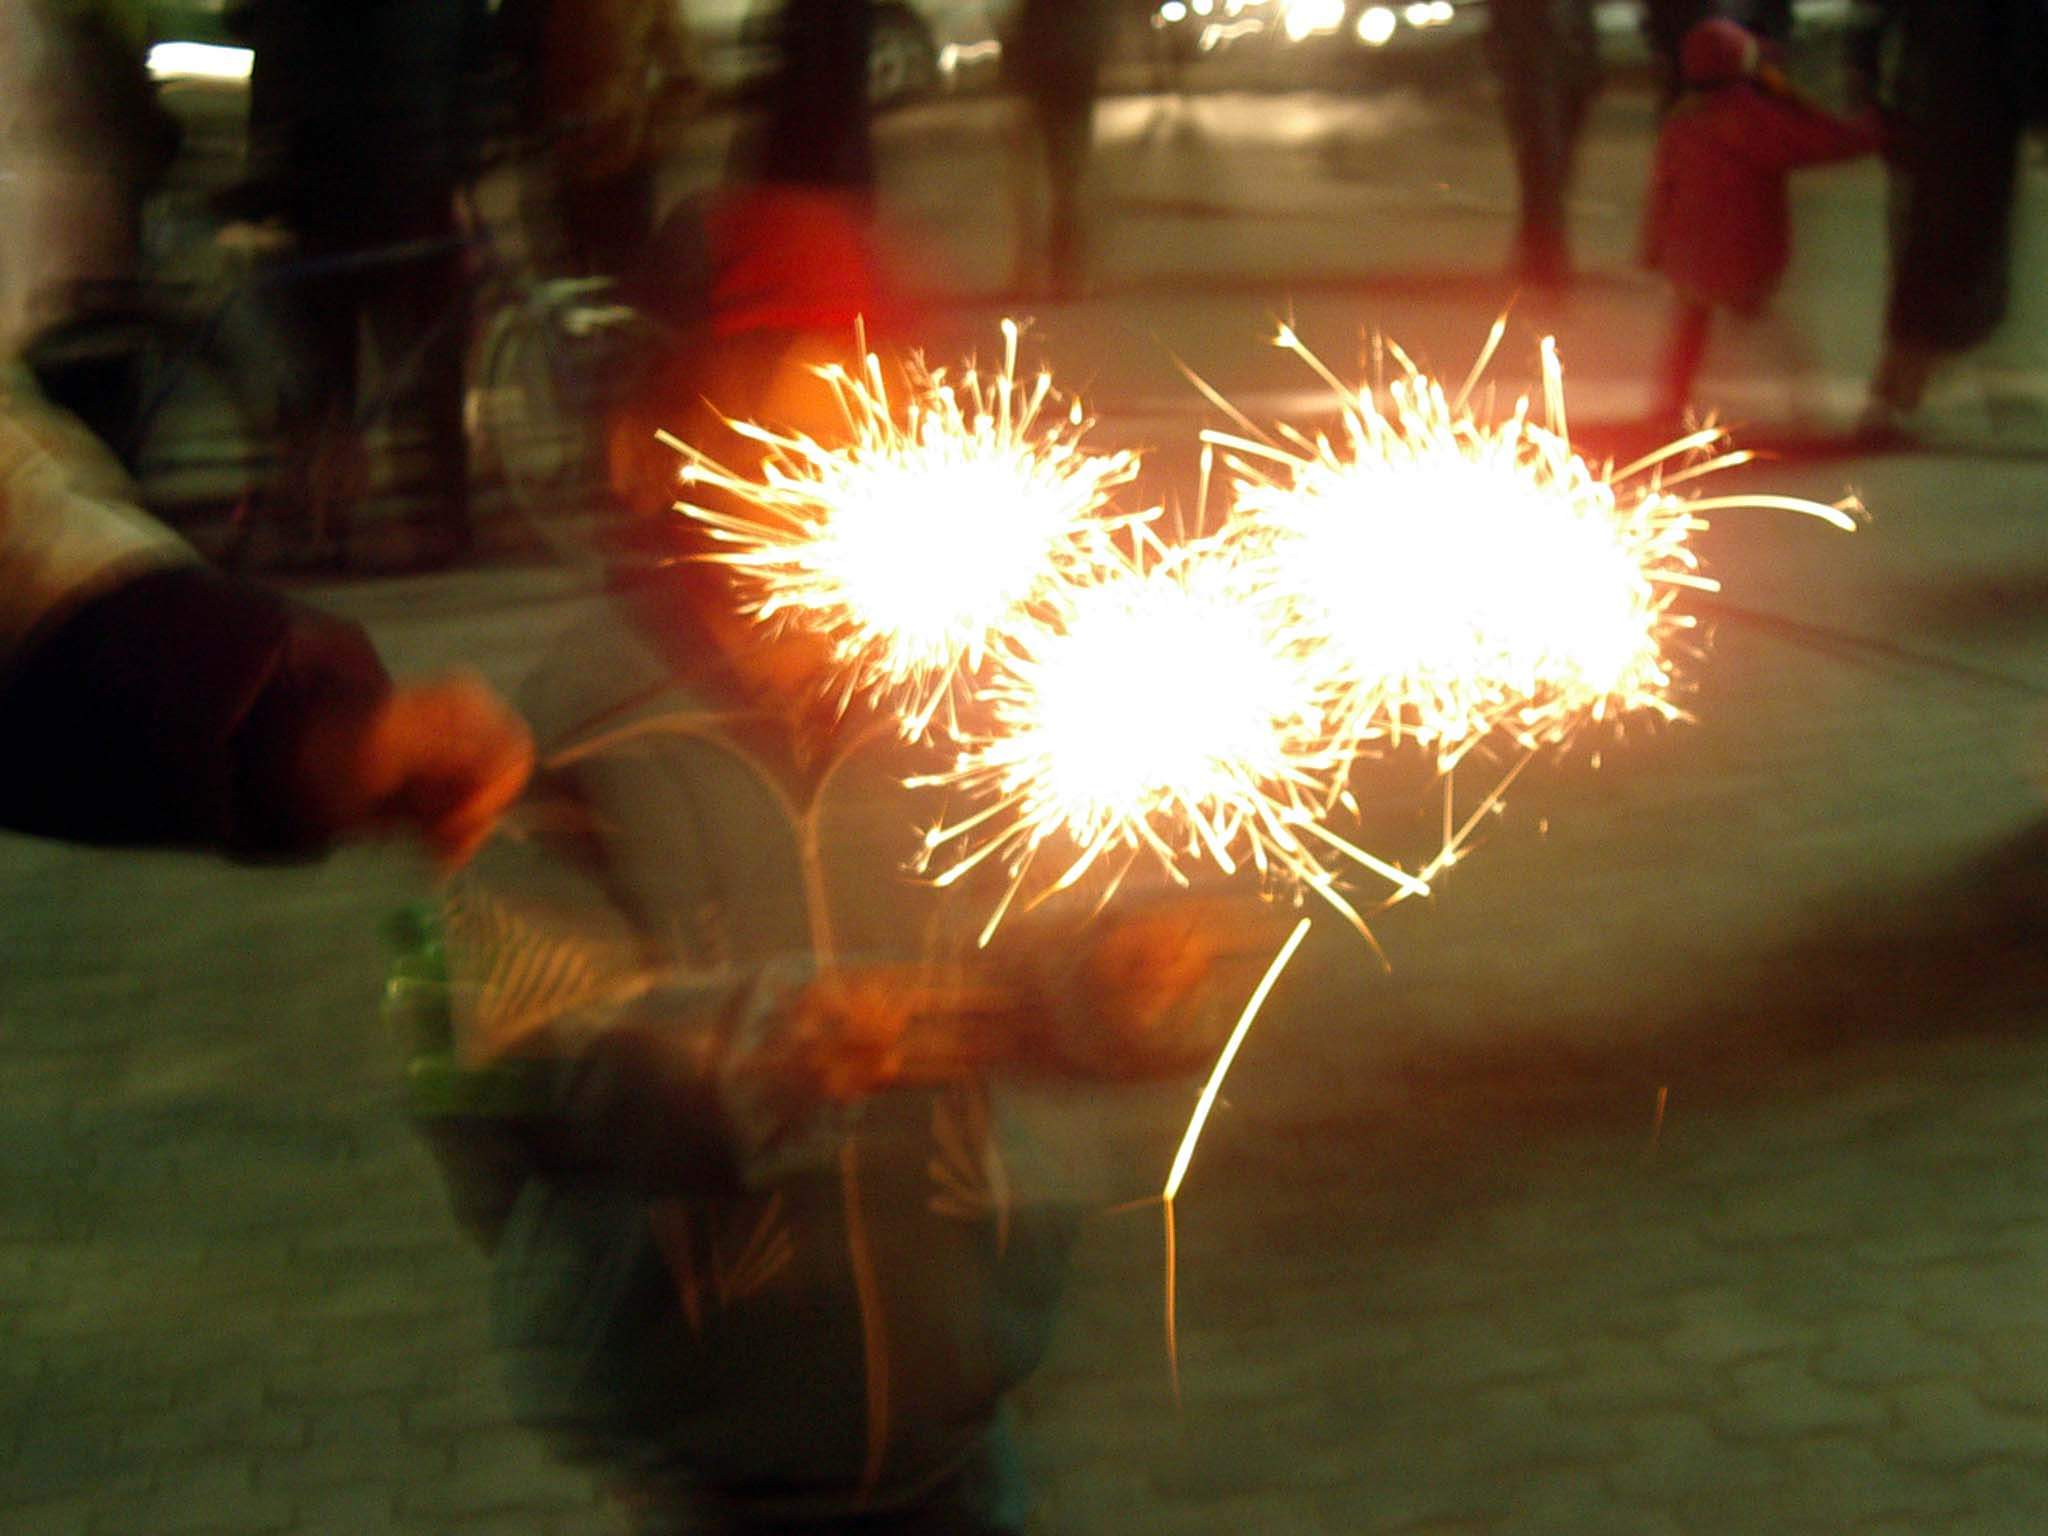 Xiao Yang's son Julian holds three sparklers at the Lantern Festival in the Railway District's main square.